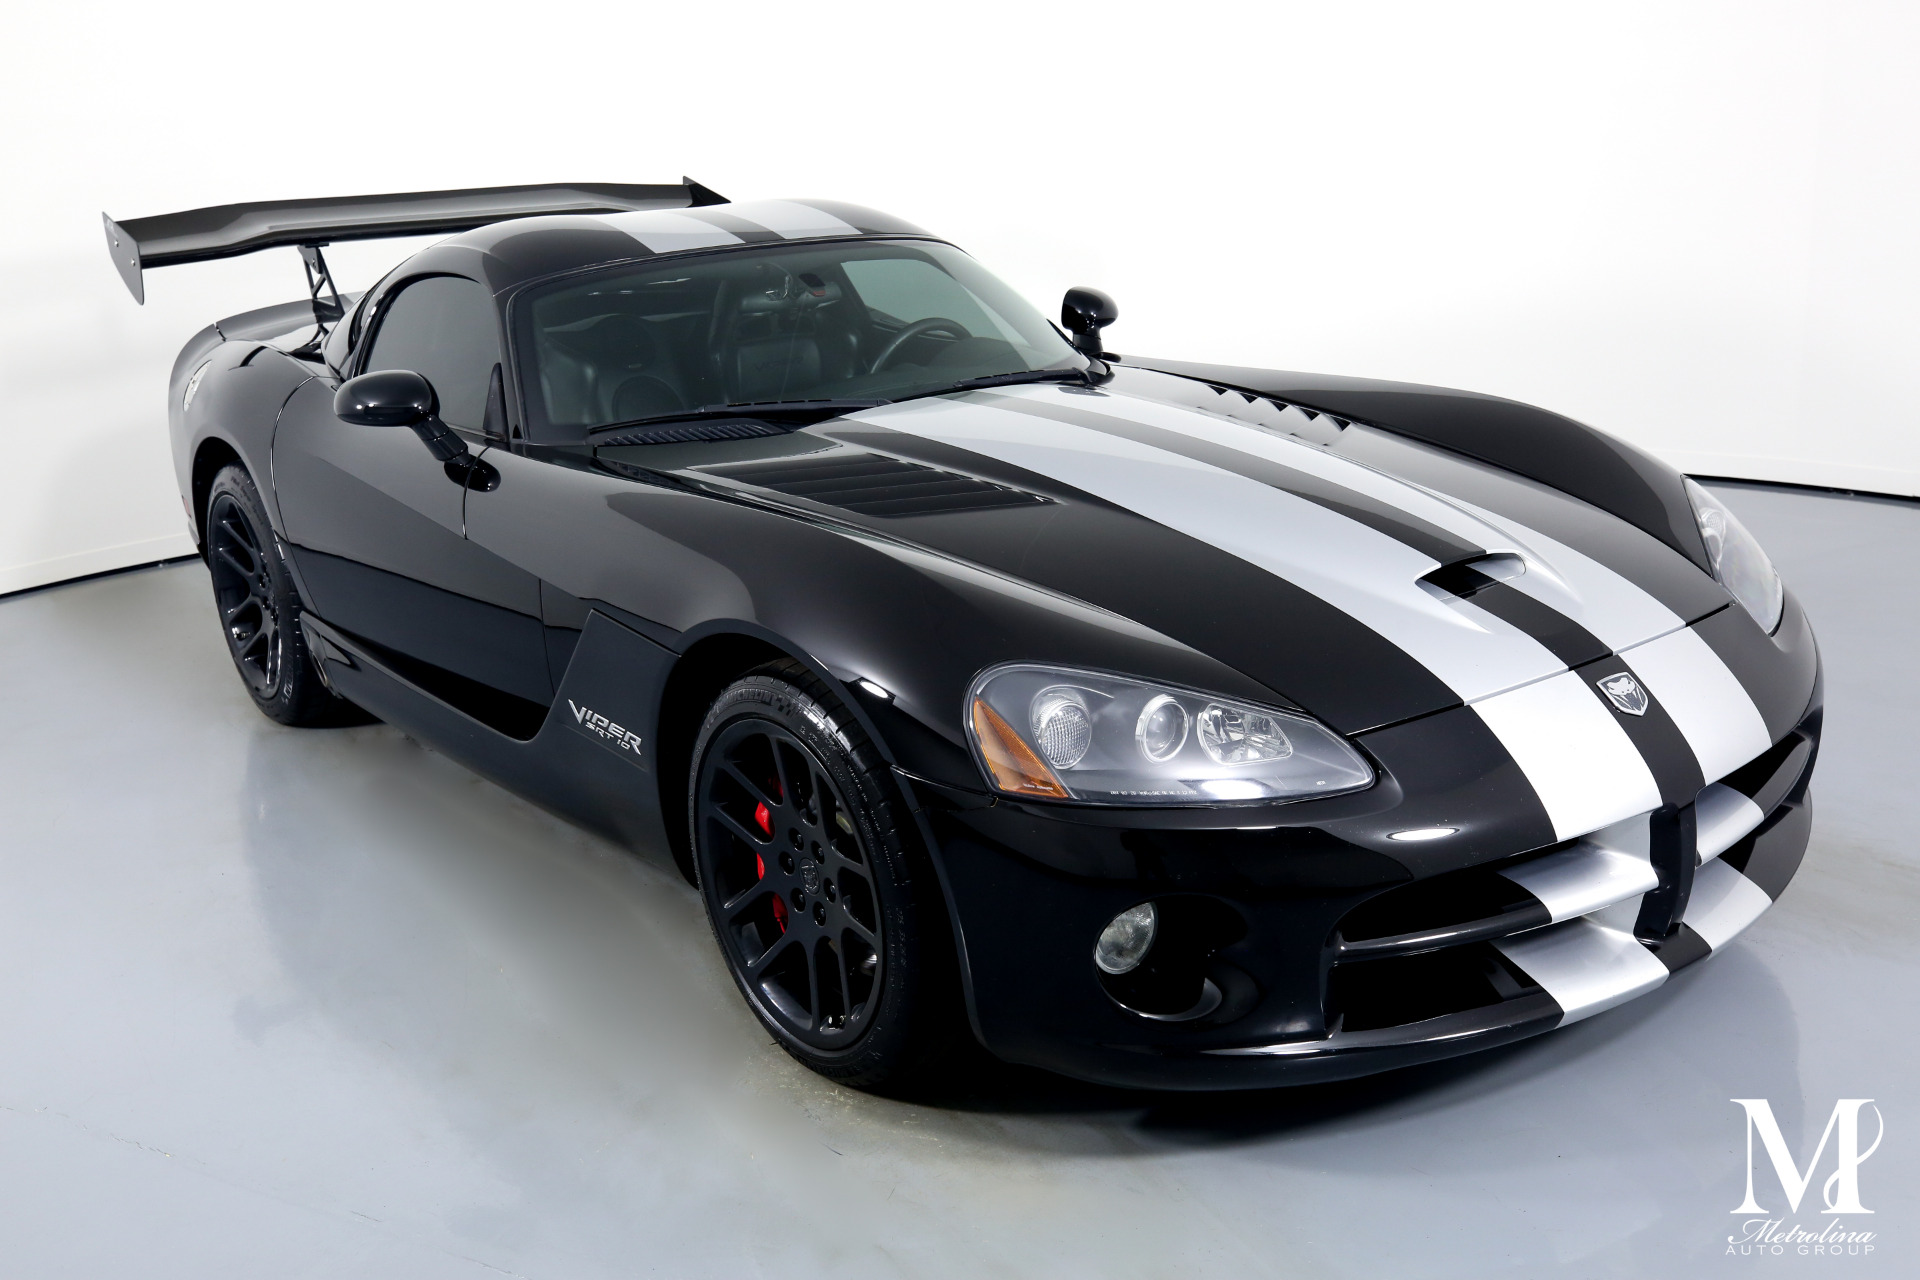 Used 2006 Dodge Viper SRT-10 for sale $64,996 at Metrolina Auto Group in Charlotte NC 28217 - 2